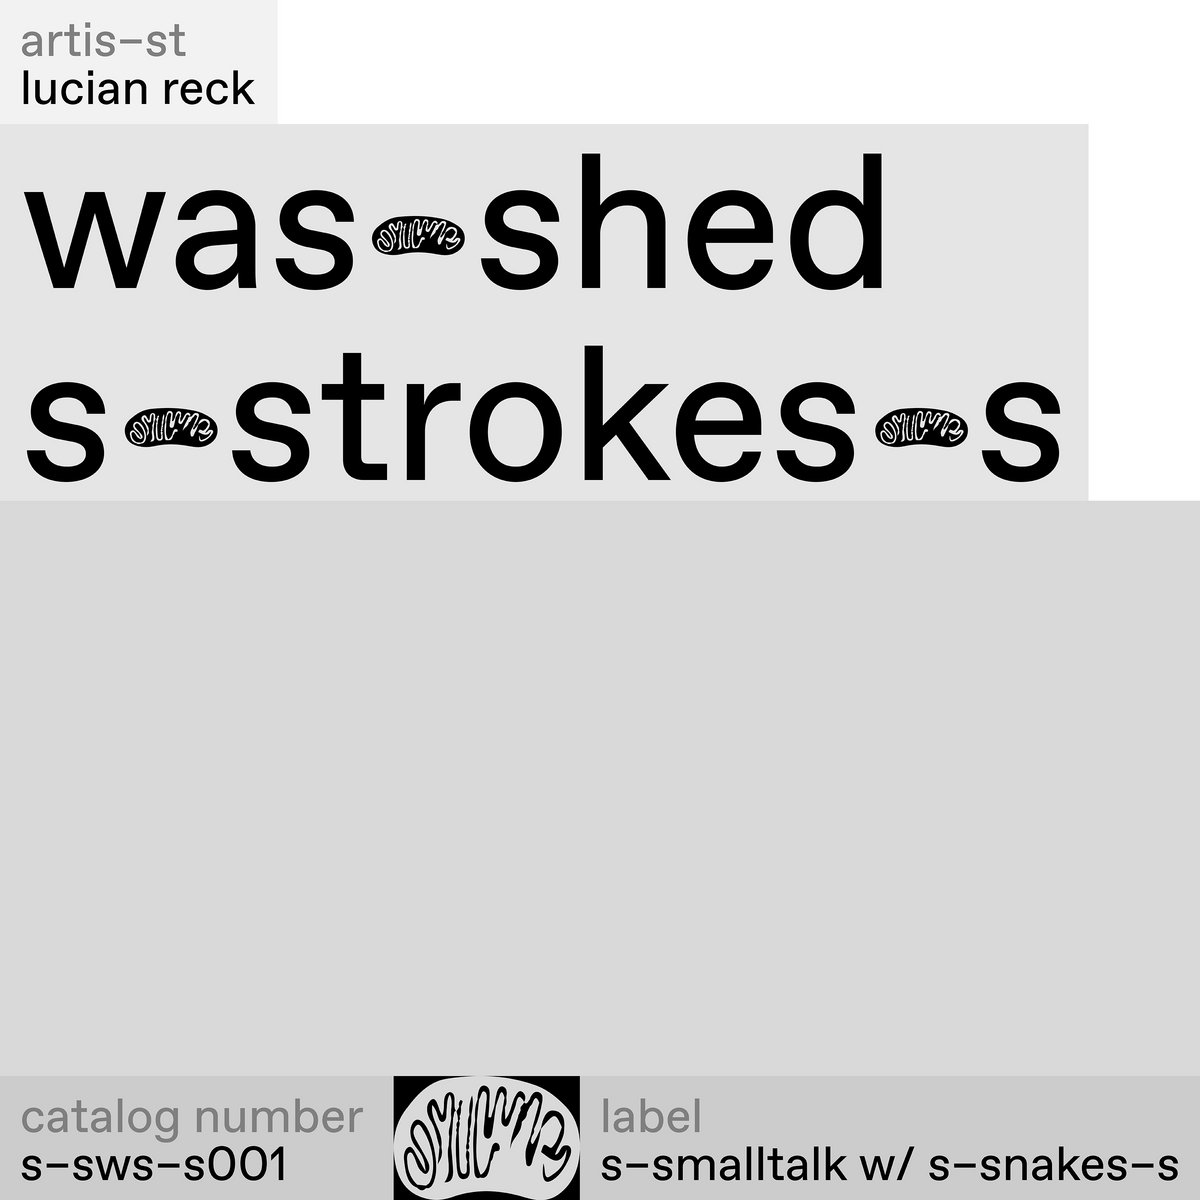 washed strokes by Lucian Reck